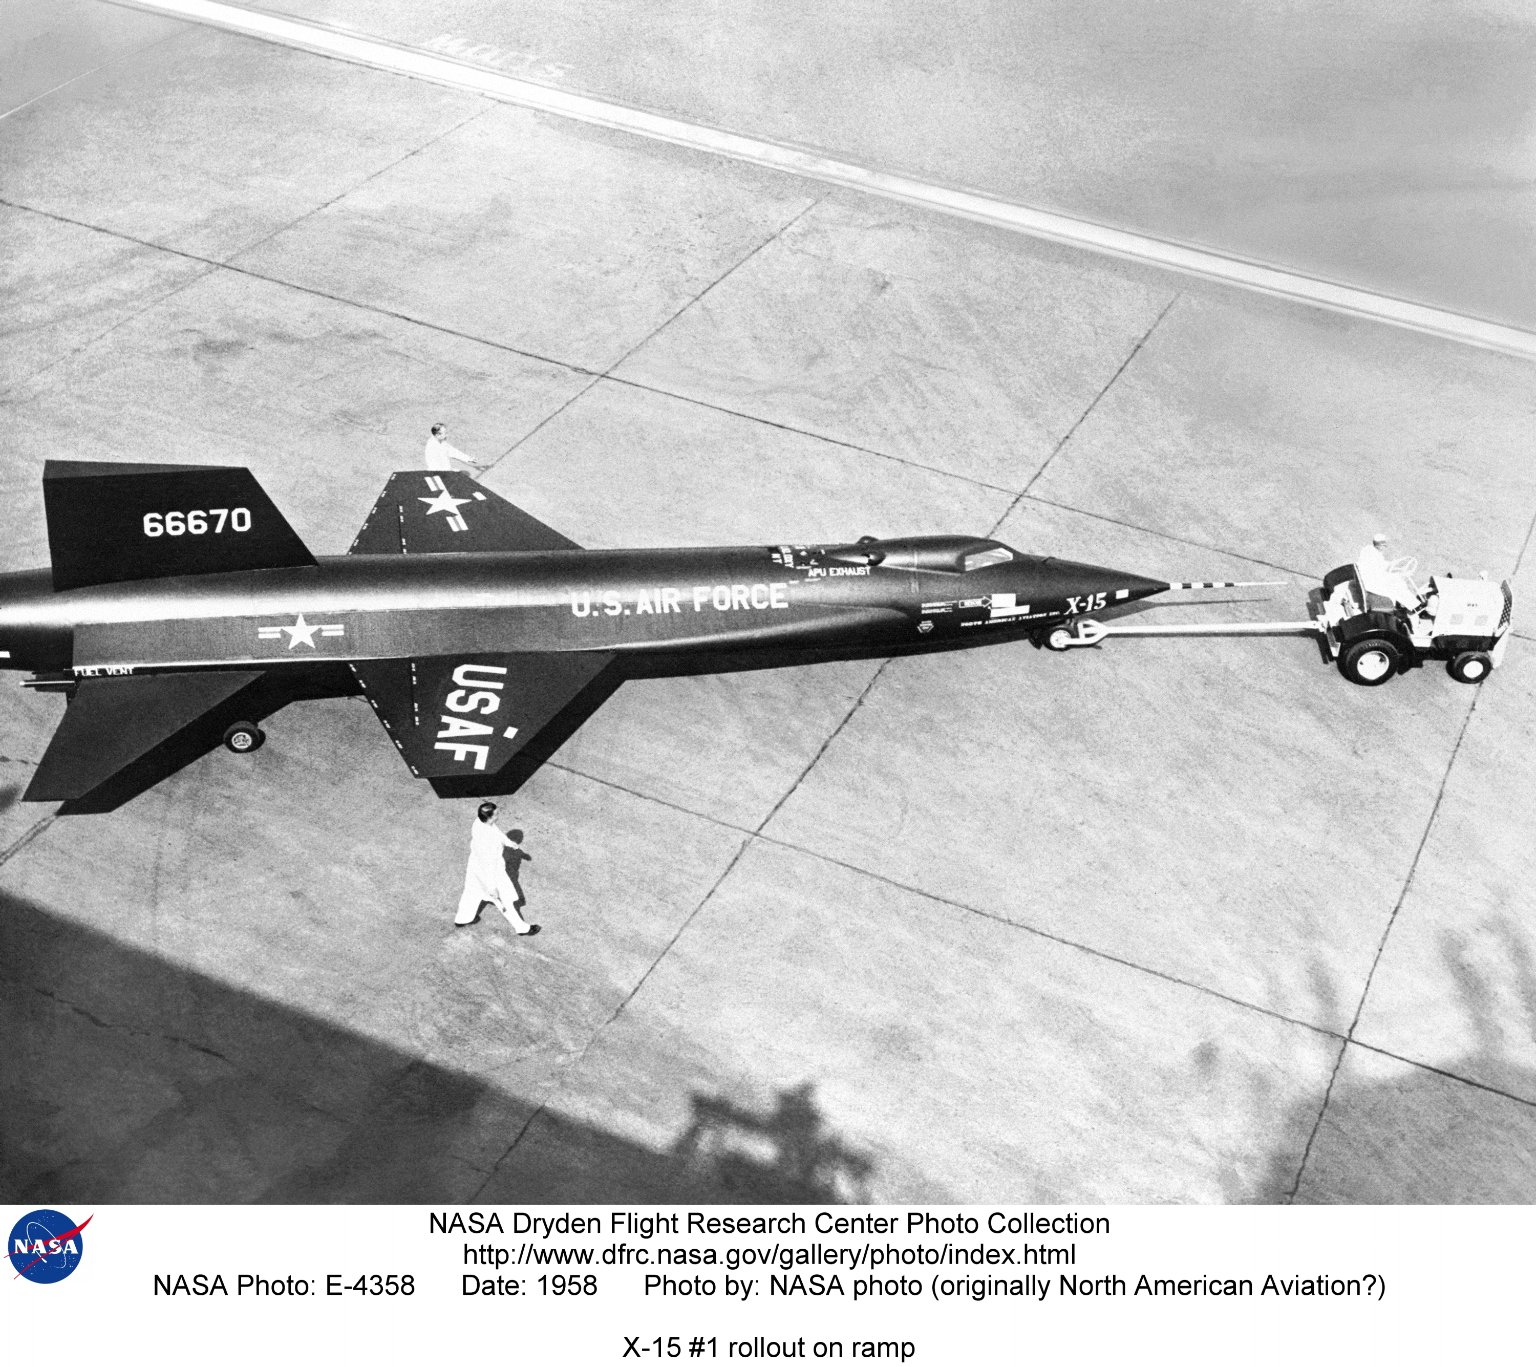 X-15 #1 rollout on ramp